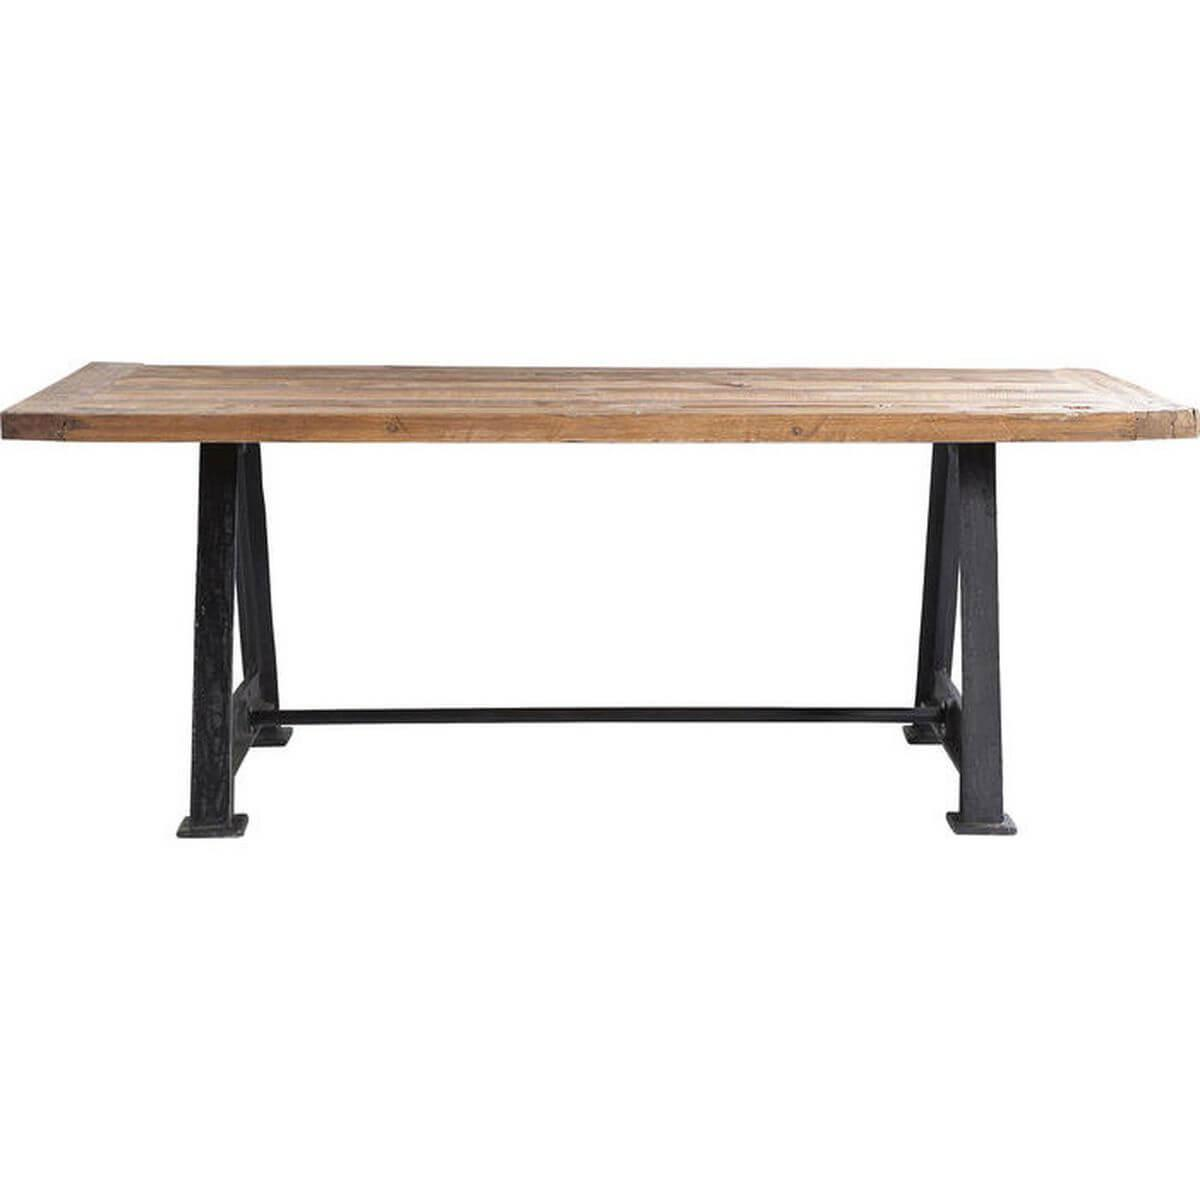 Table 210x100cm RAILWAY Kare Design